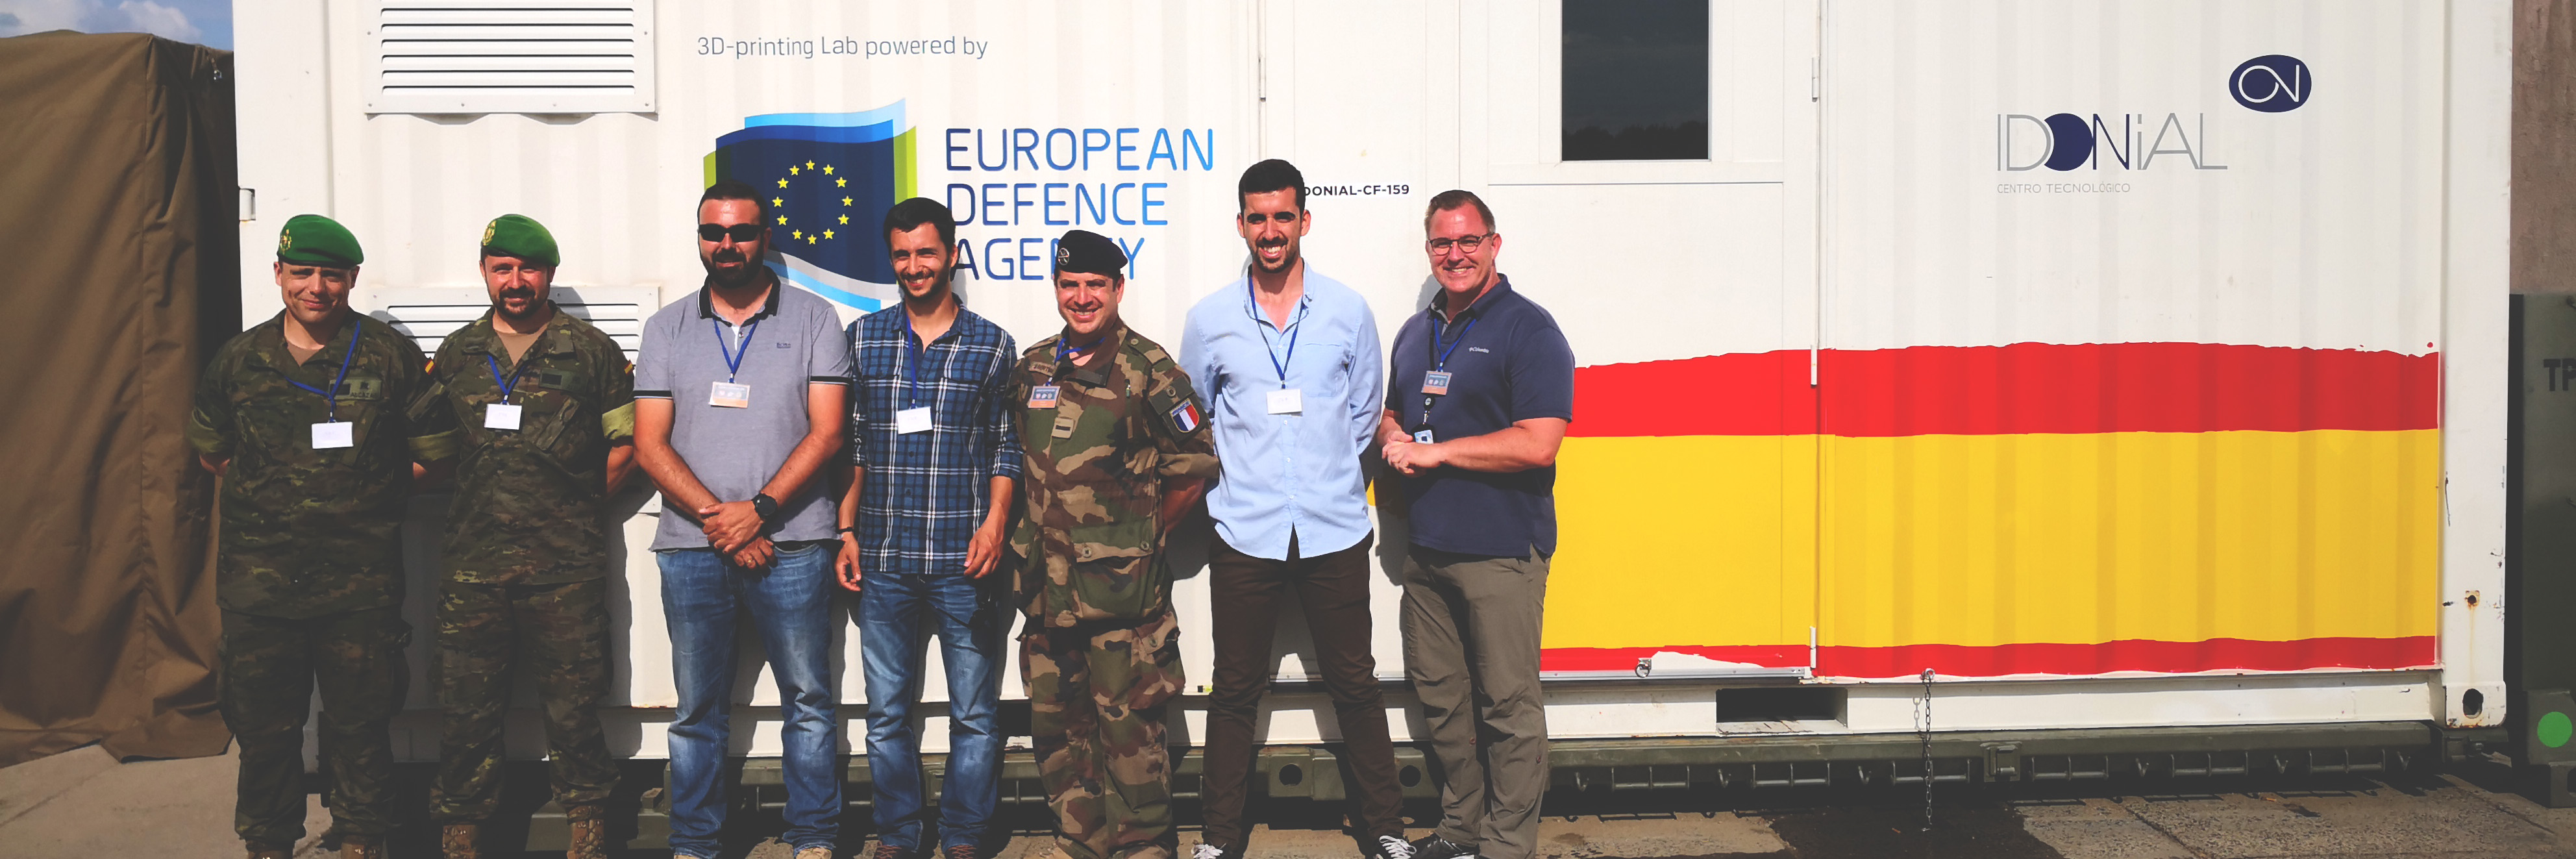 EDA projects involved in major international logistics exercise